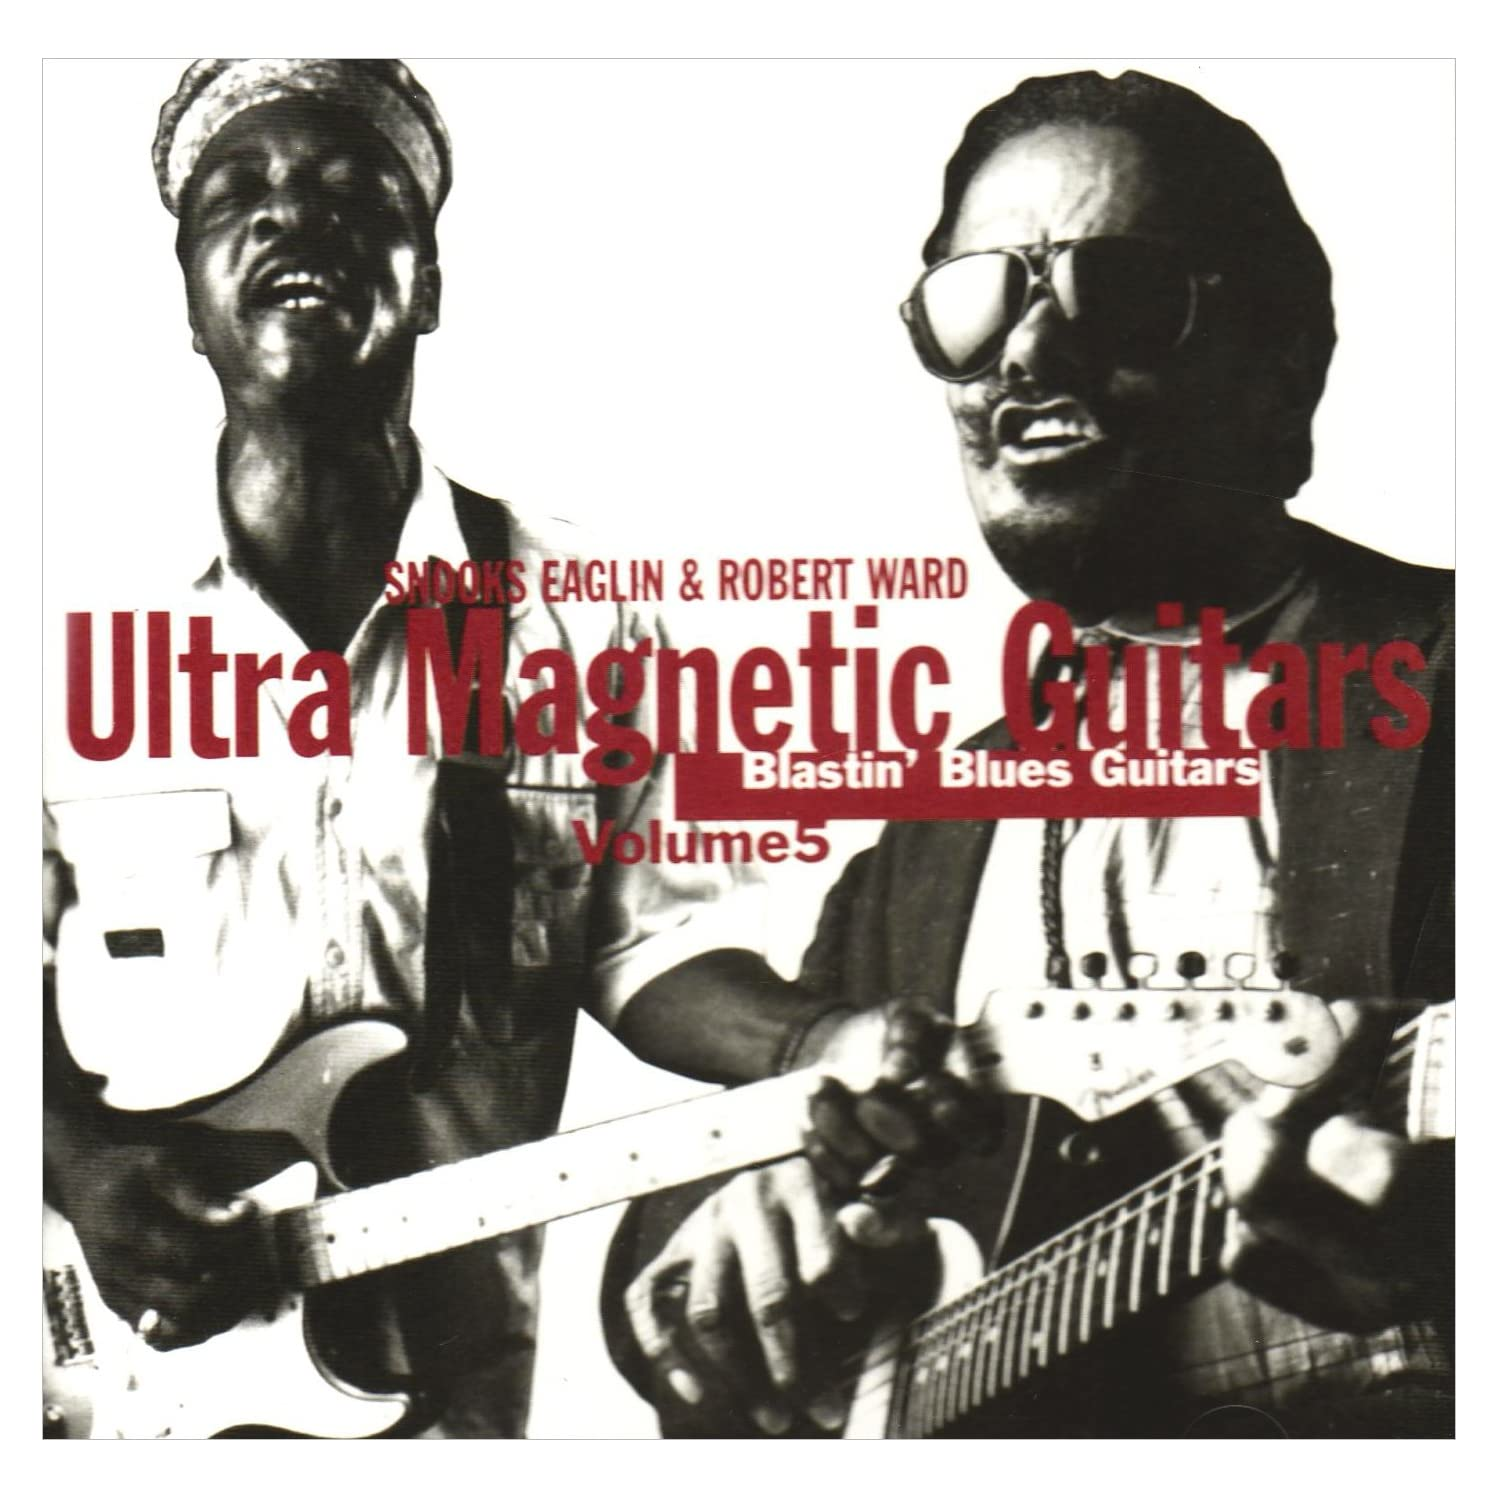 Ultra Magnetic Guitars